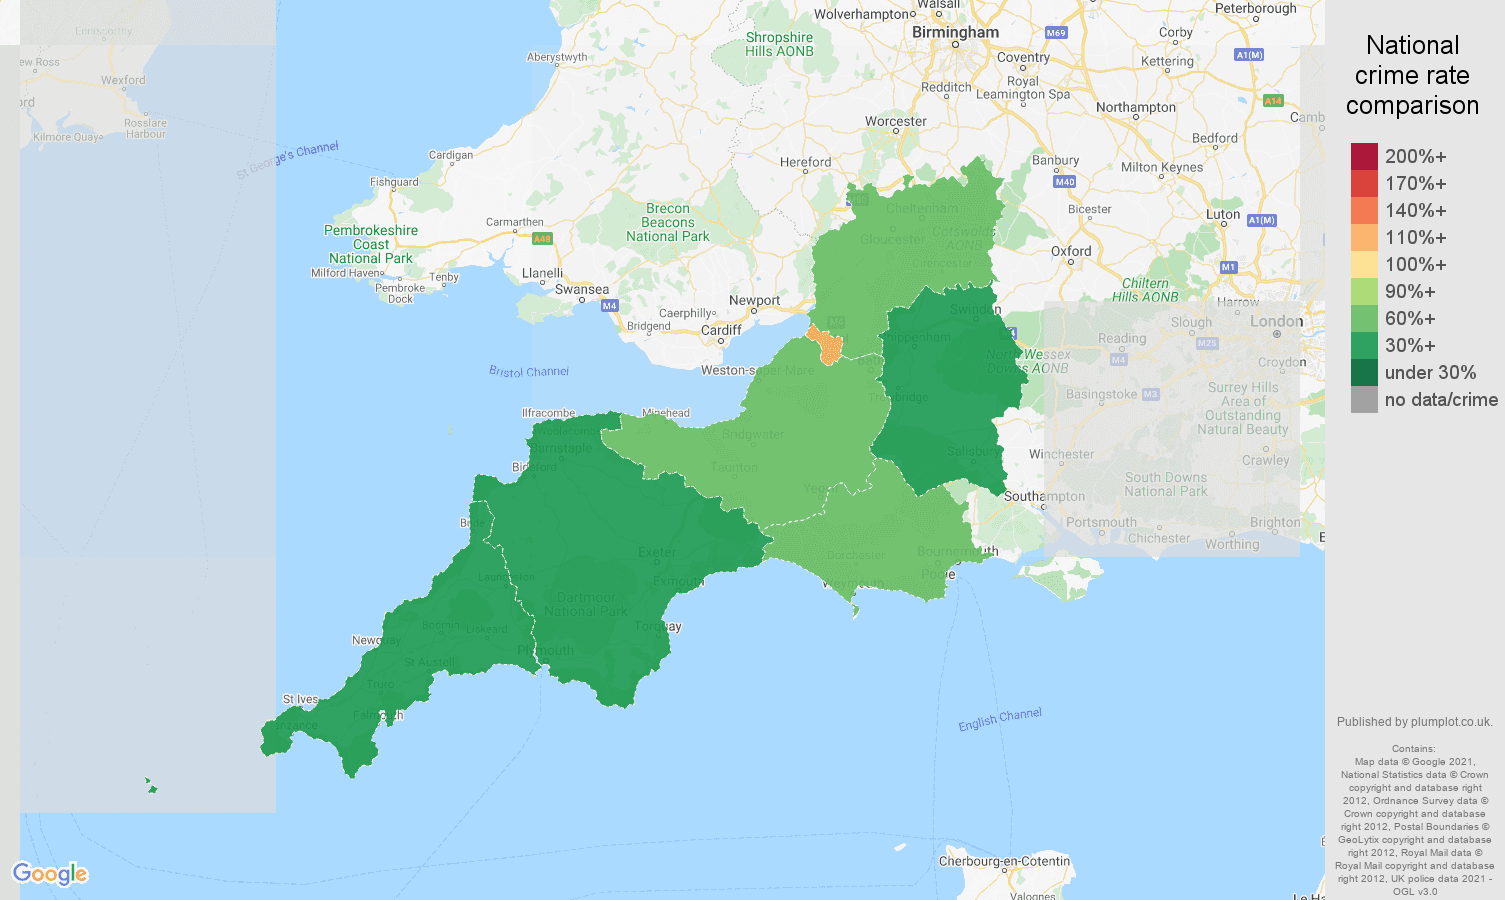 South West burglary crime rate comparison map